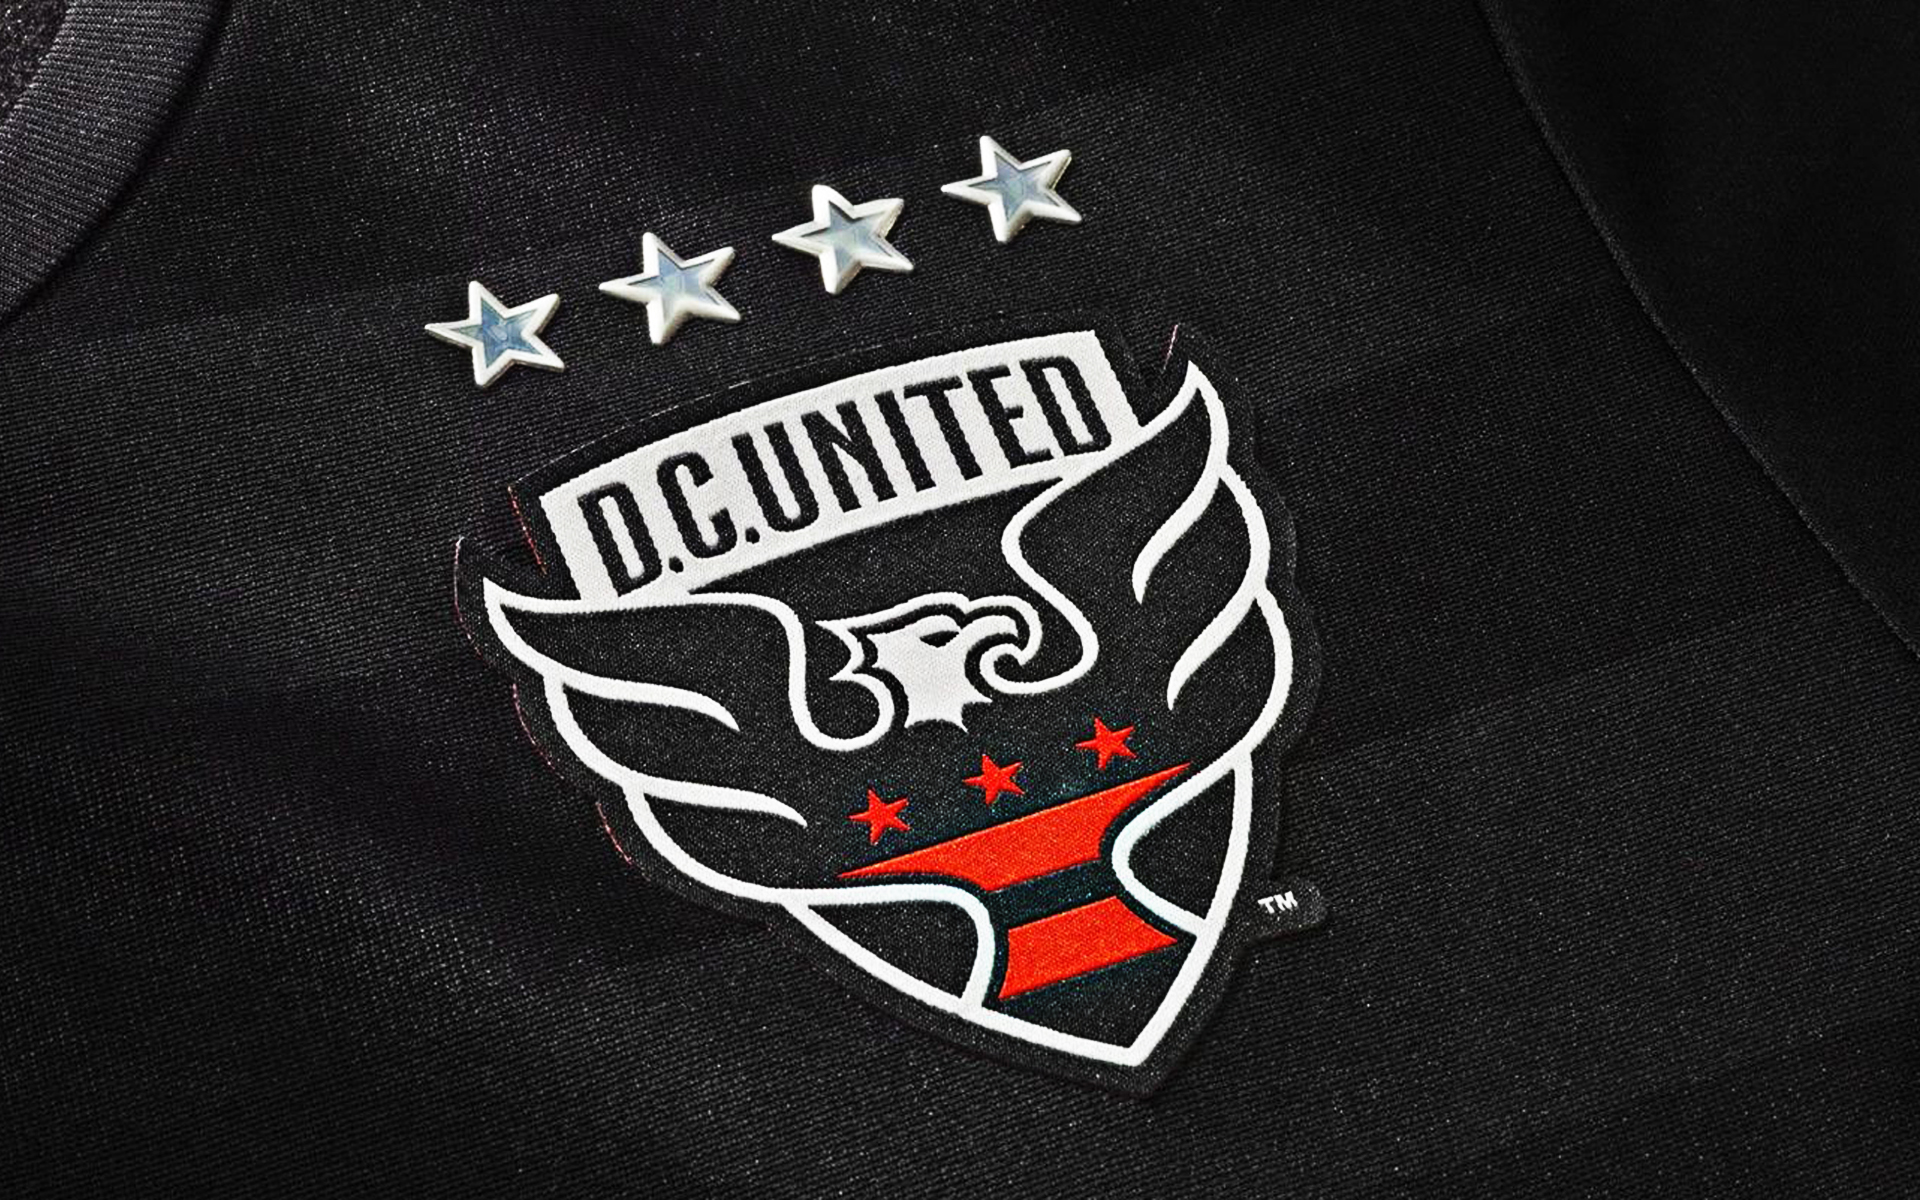 Download wallpapers DC United, American soccer club, Washington, USA